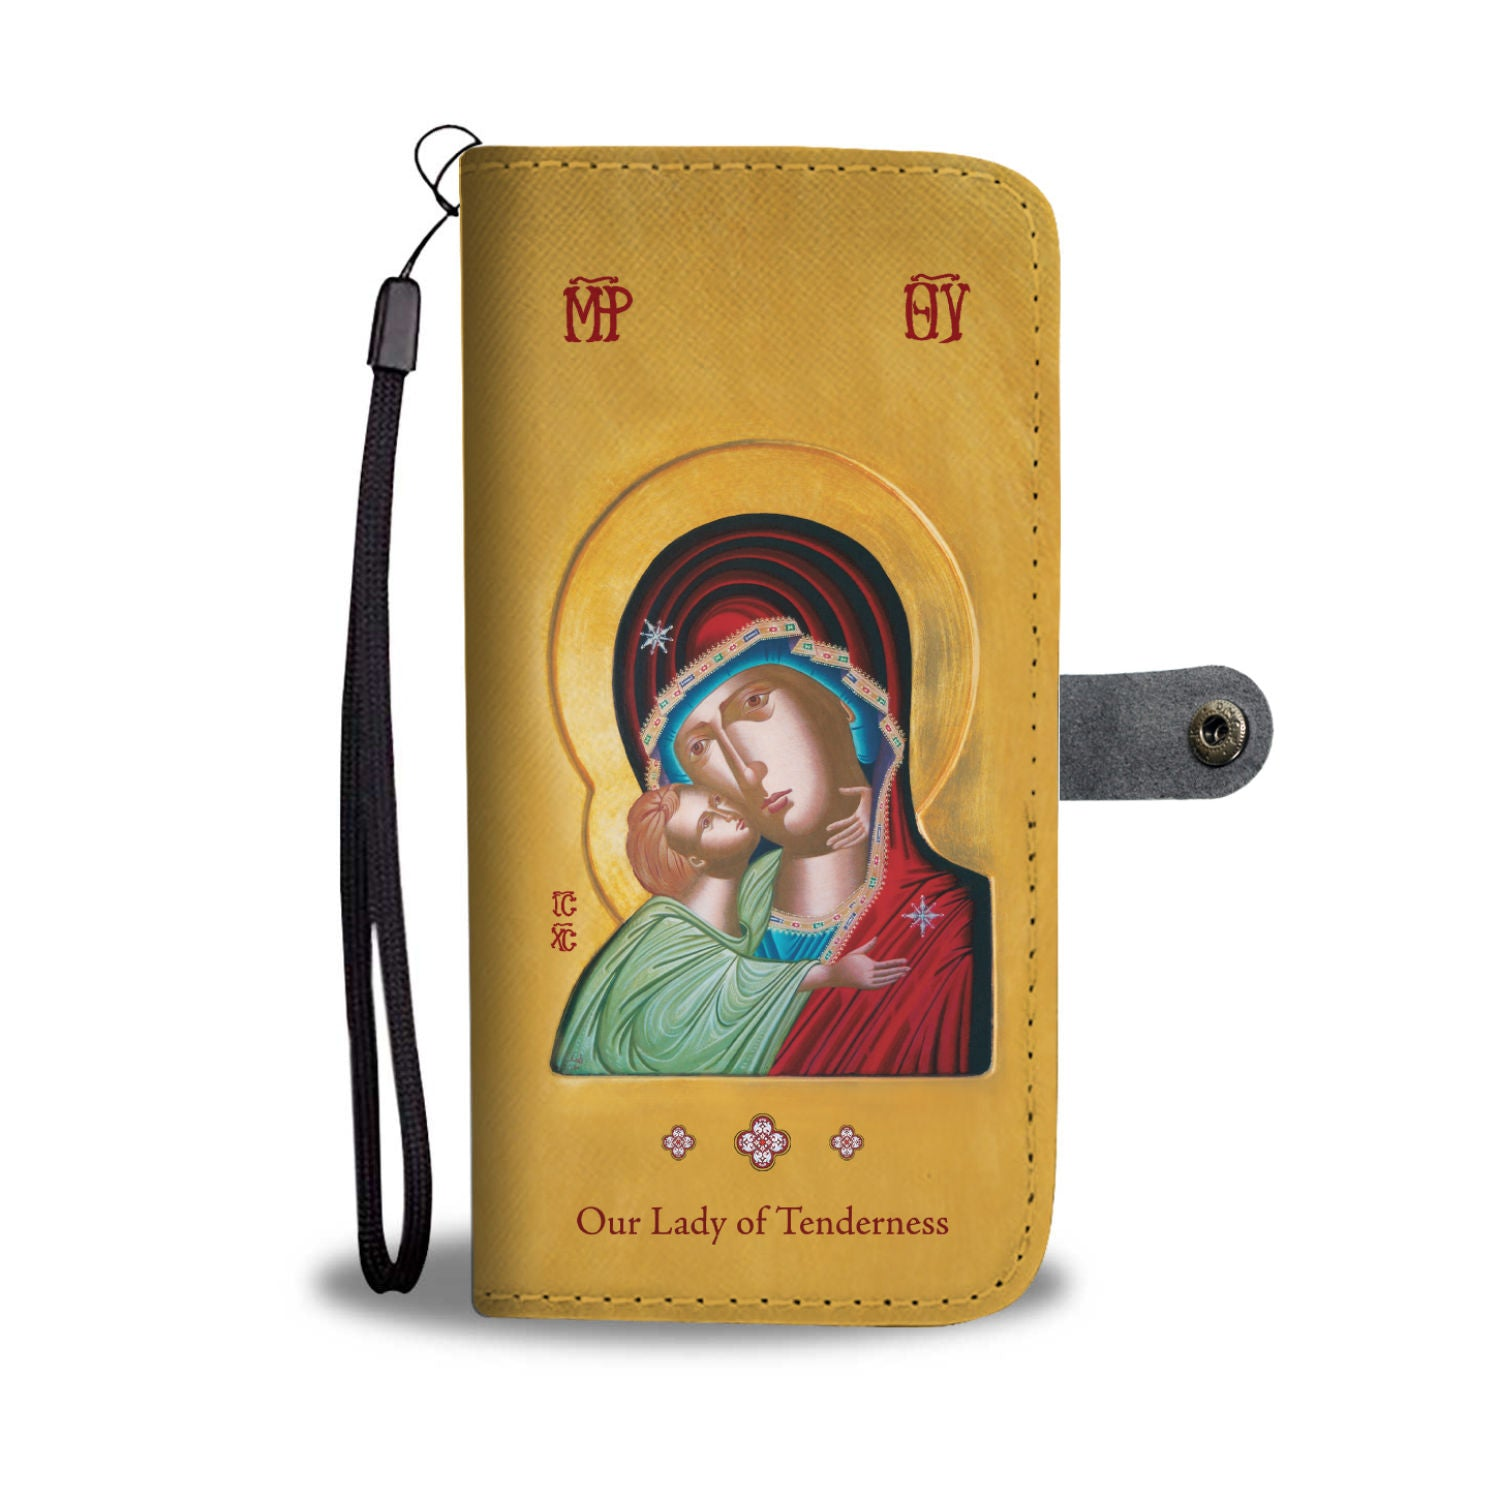 Our Lady of Tenderness - Theotokos - Phone Wallet & Case - Chady Elias